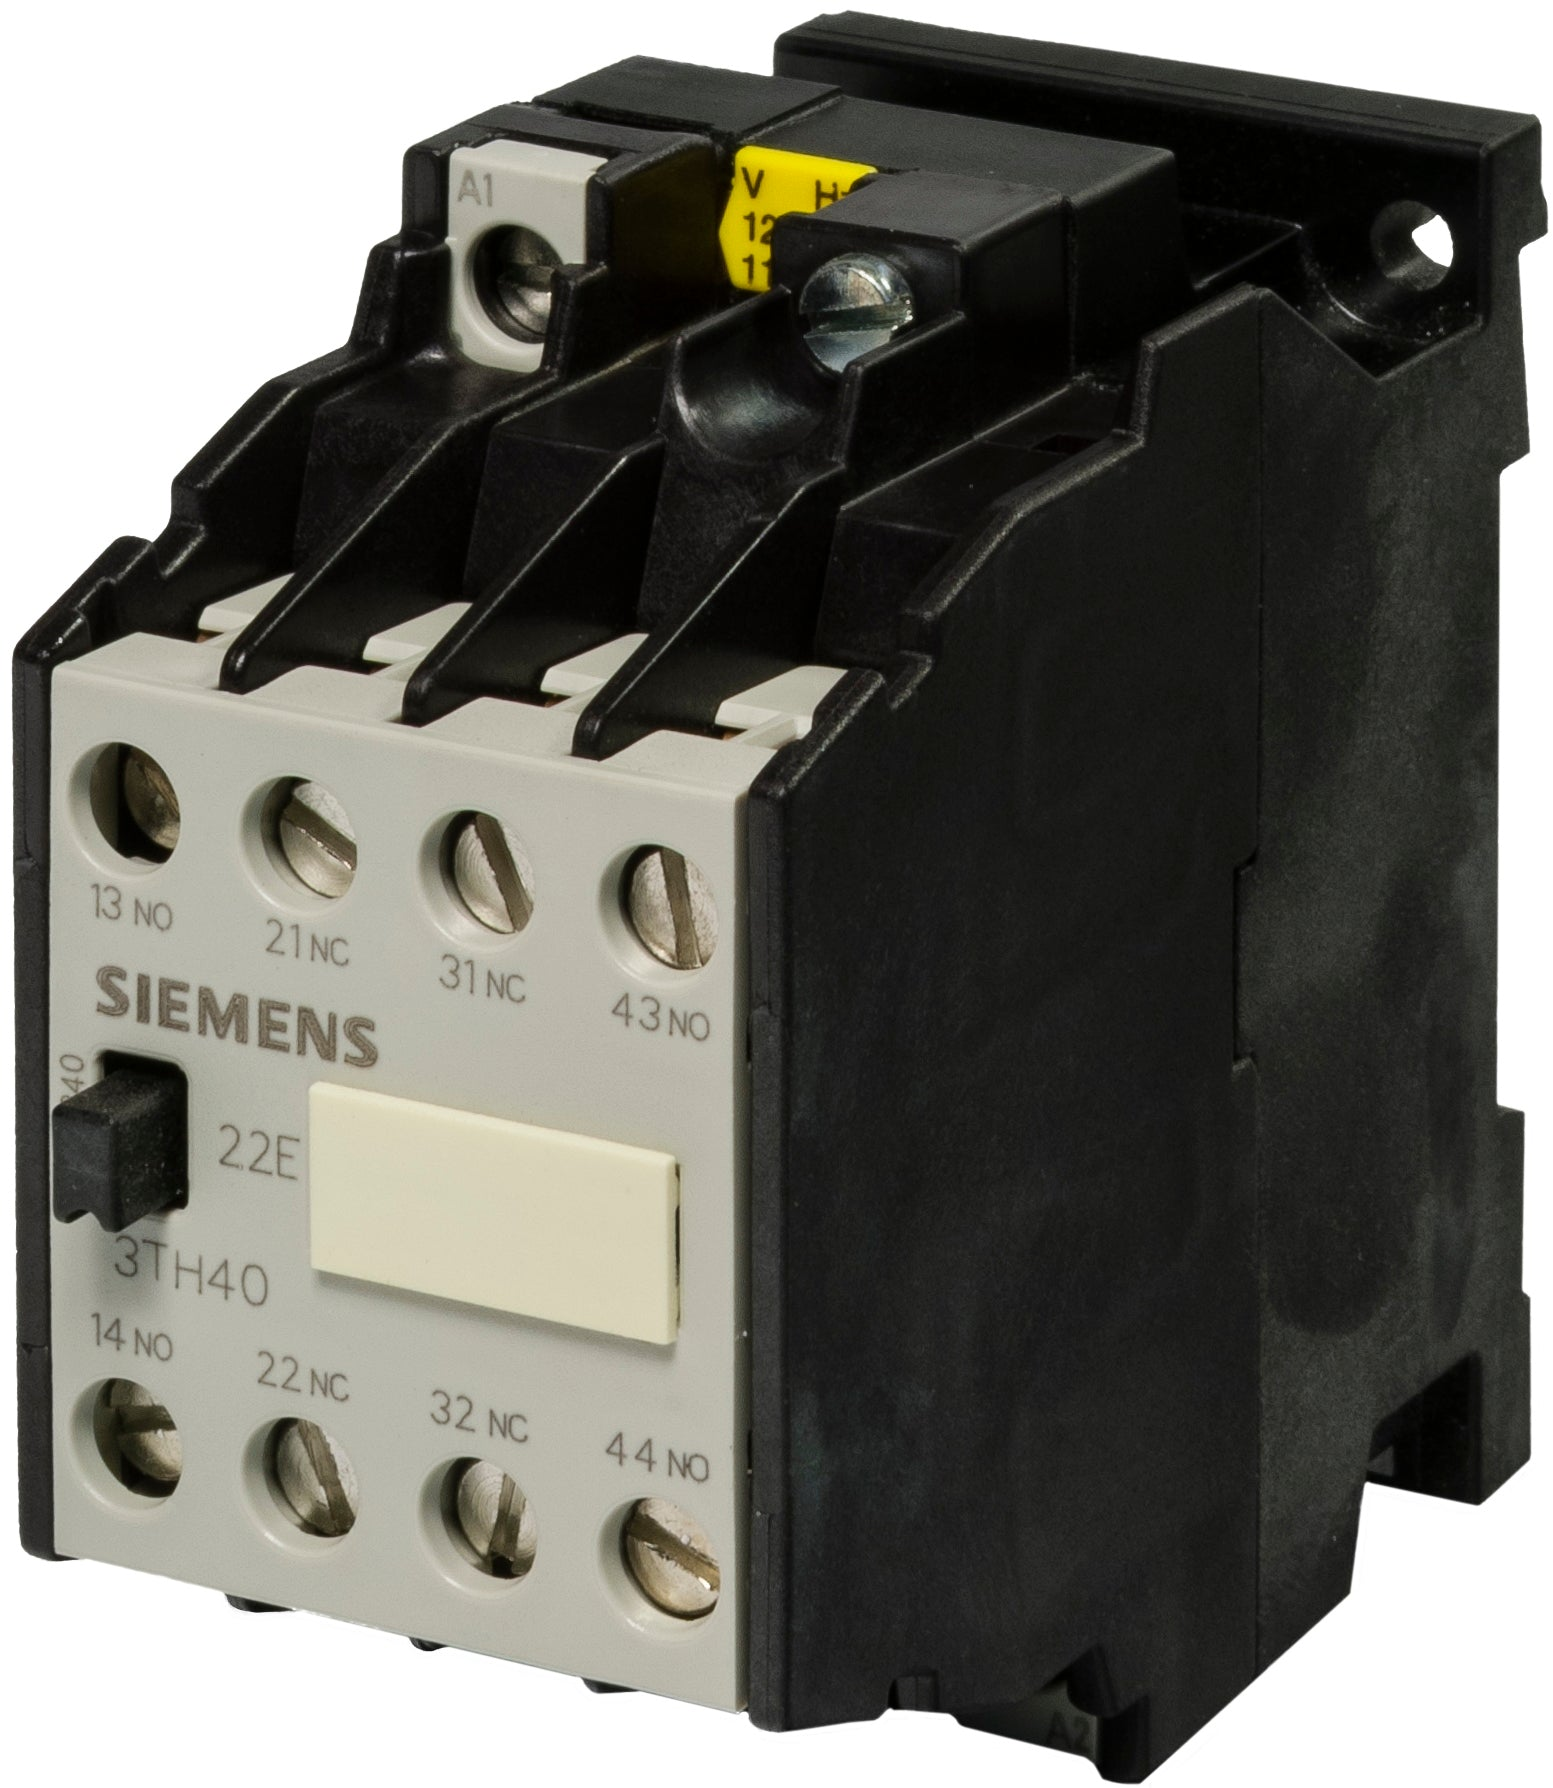 3th4 Control Relays Siemens Relay With No And Nc Contacts 4 Fixed